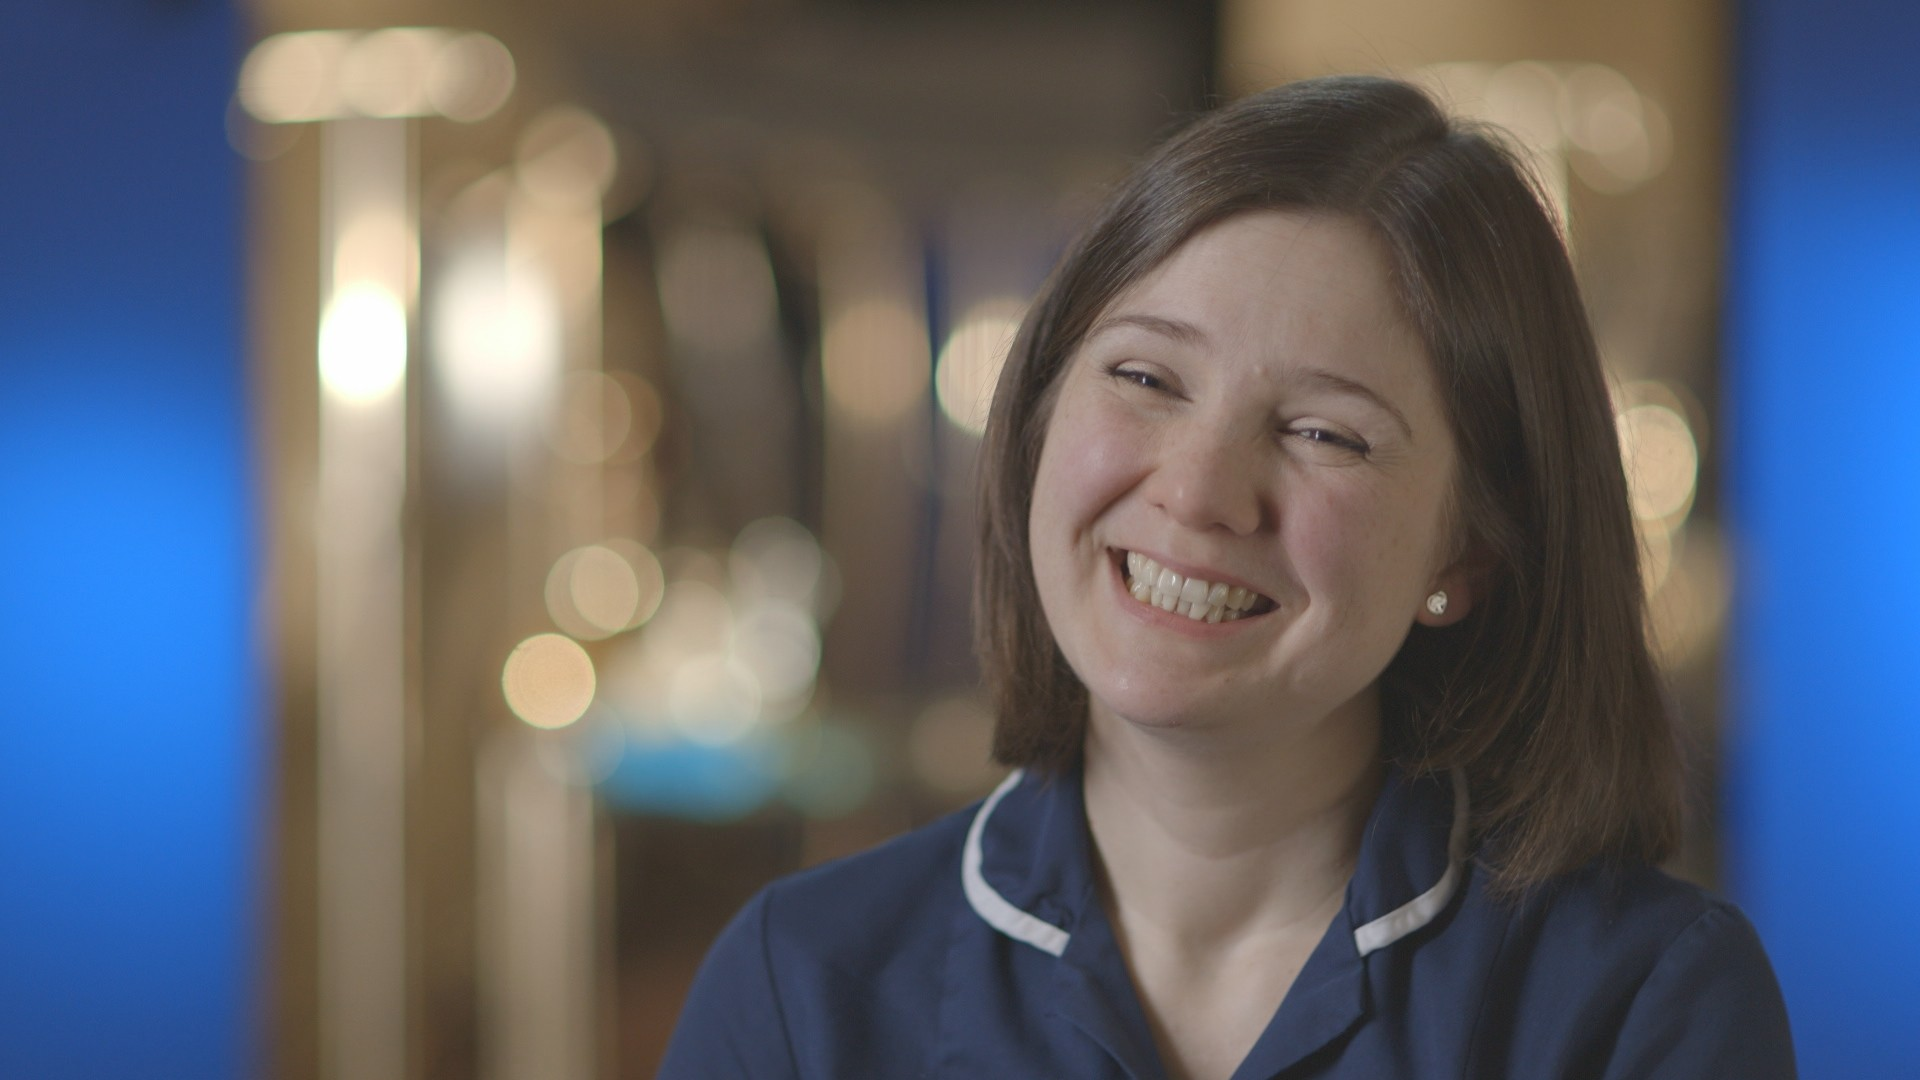 Midwife Harriet in One Born Every Minute